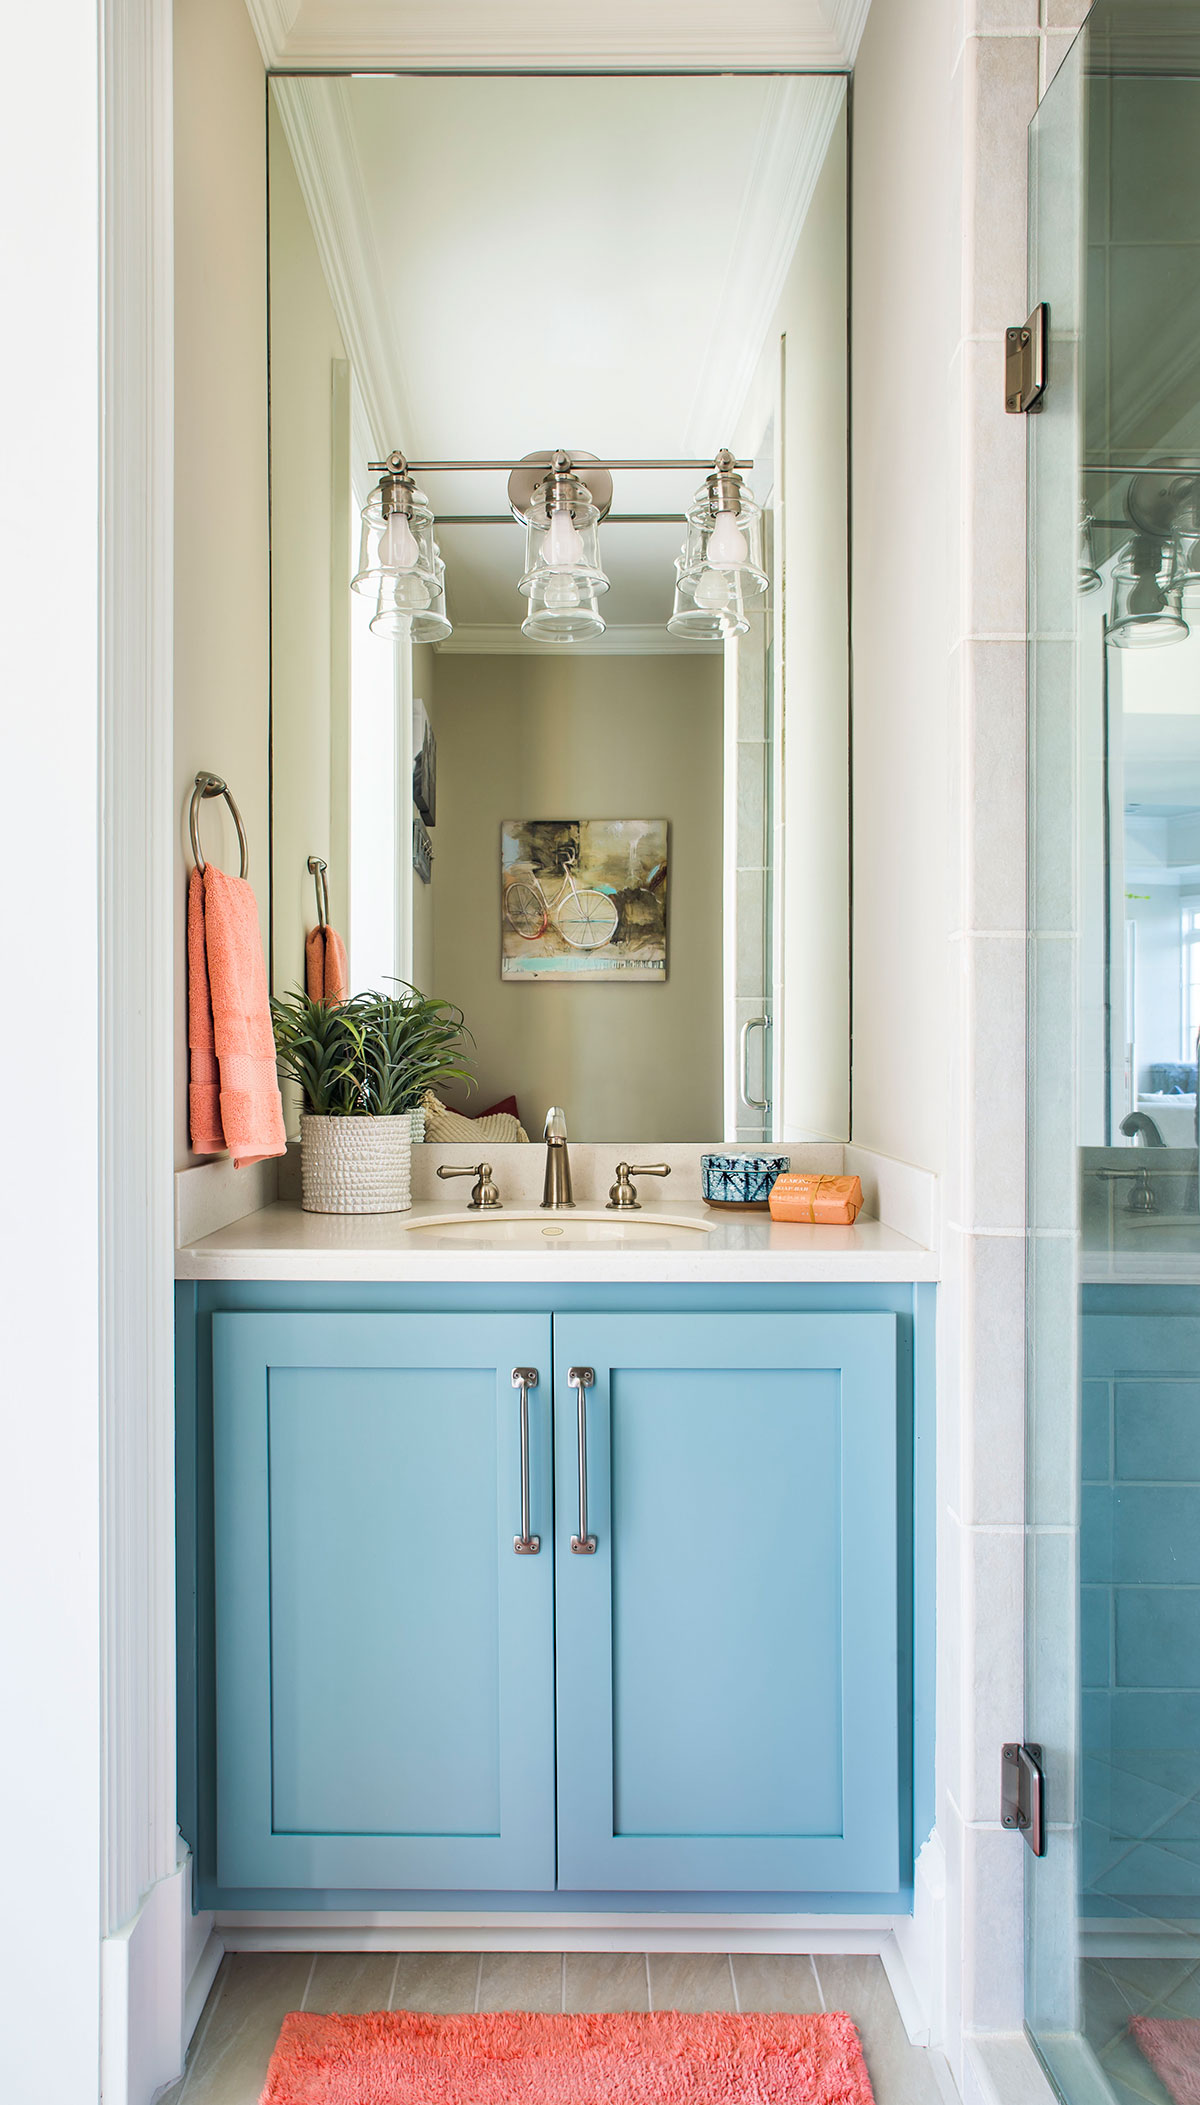 Colorful, coastal bathroom with turquoise cabinetry and brushed nickel hardware